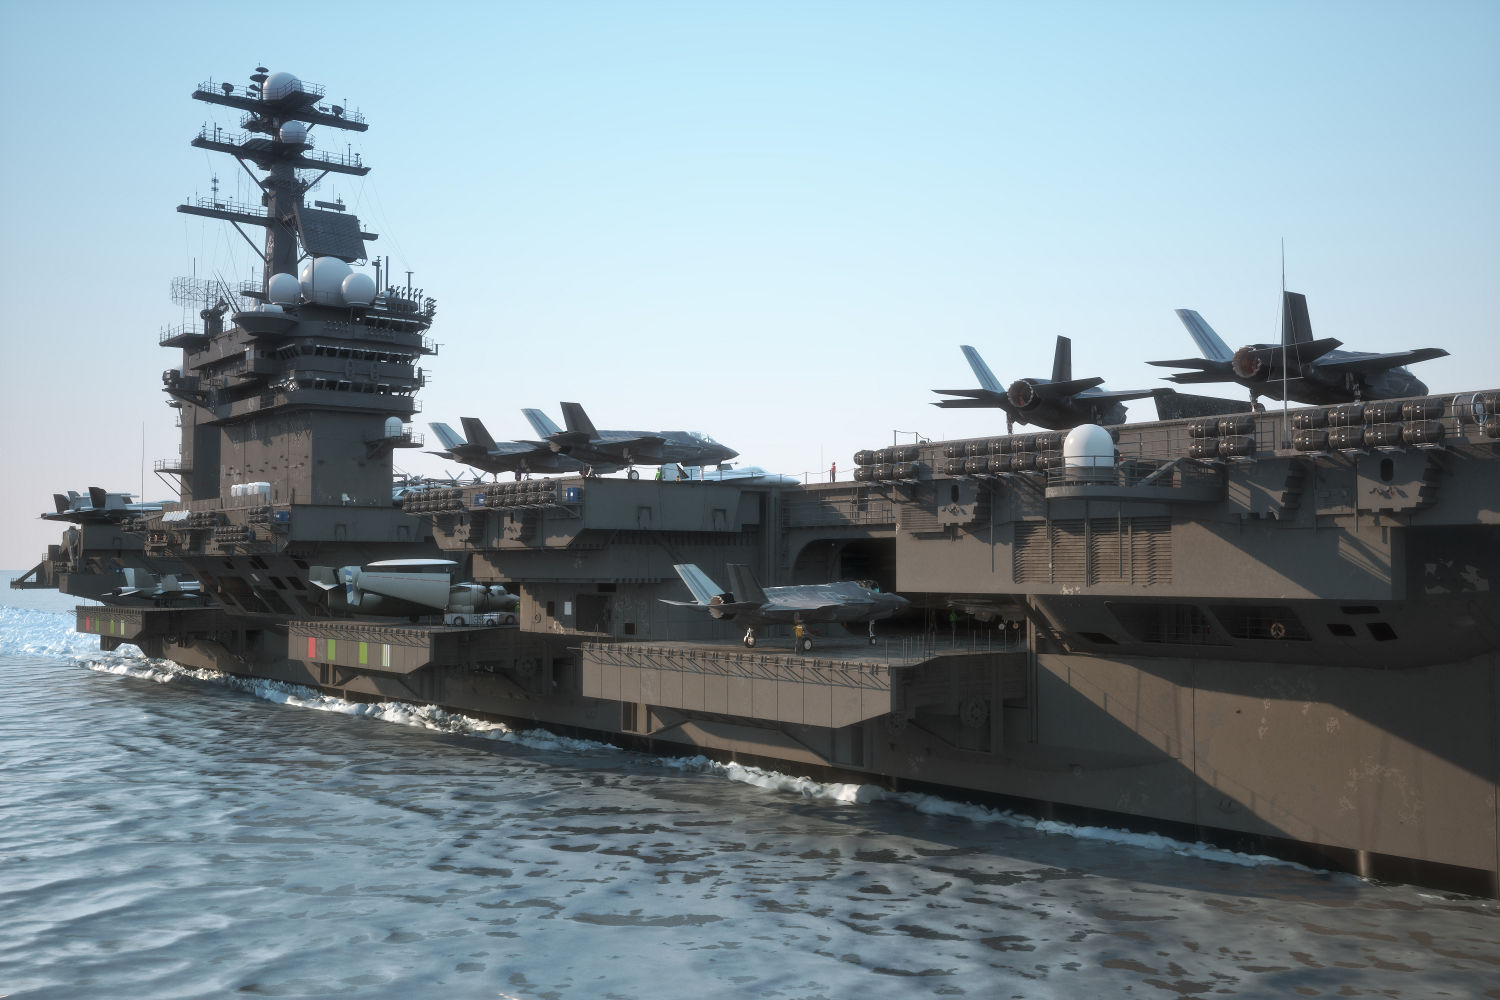 Military and Aerospace - aircraft carrier